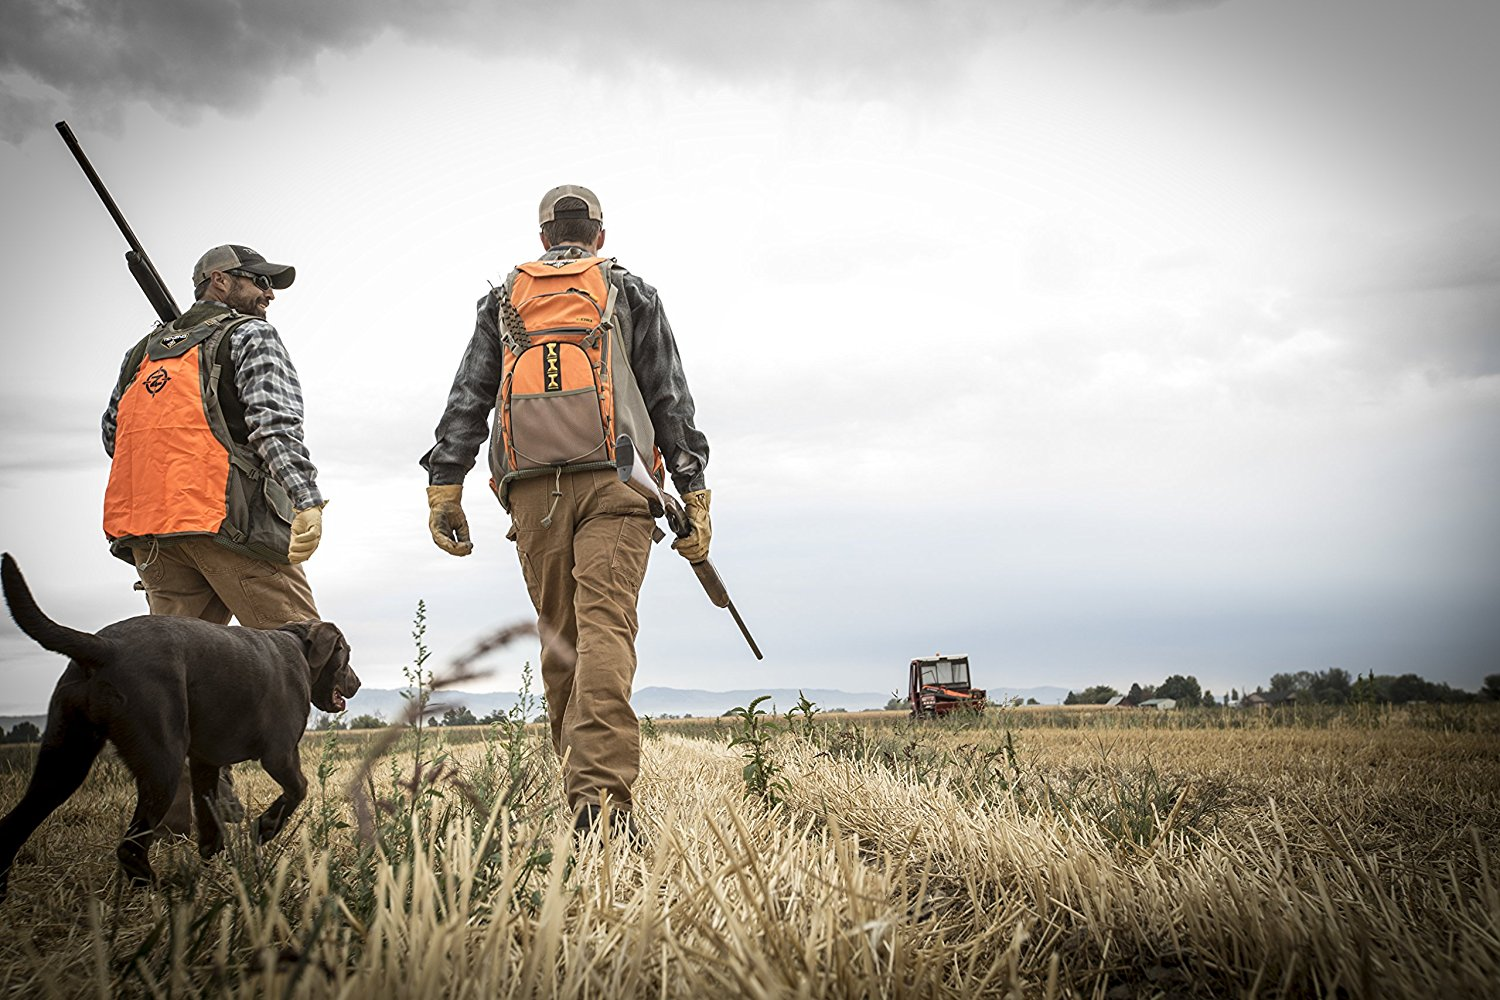 cd3f88651c7c2 Best Upland Hunting Vest - Our Top Picks | The Upland Hunter